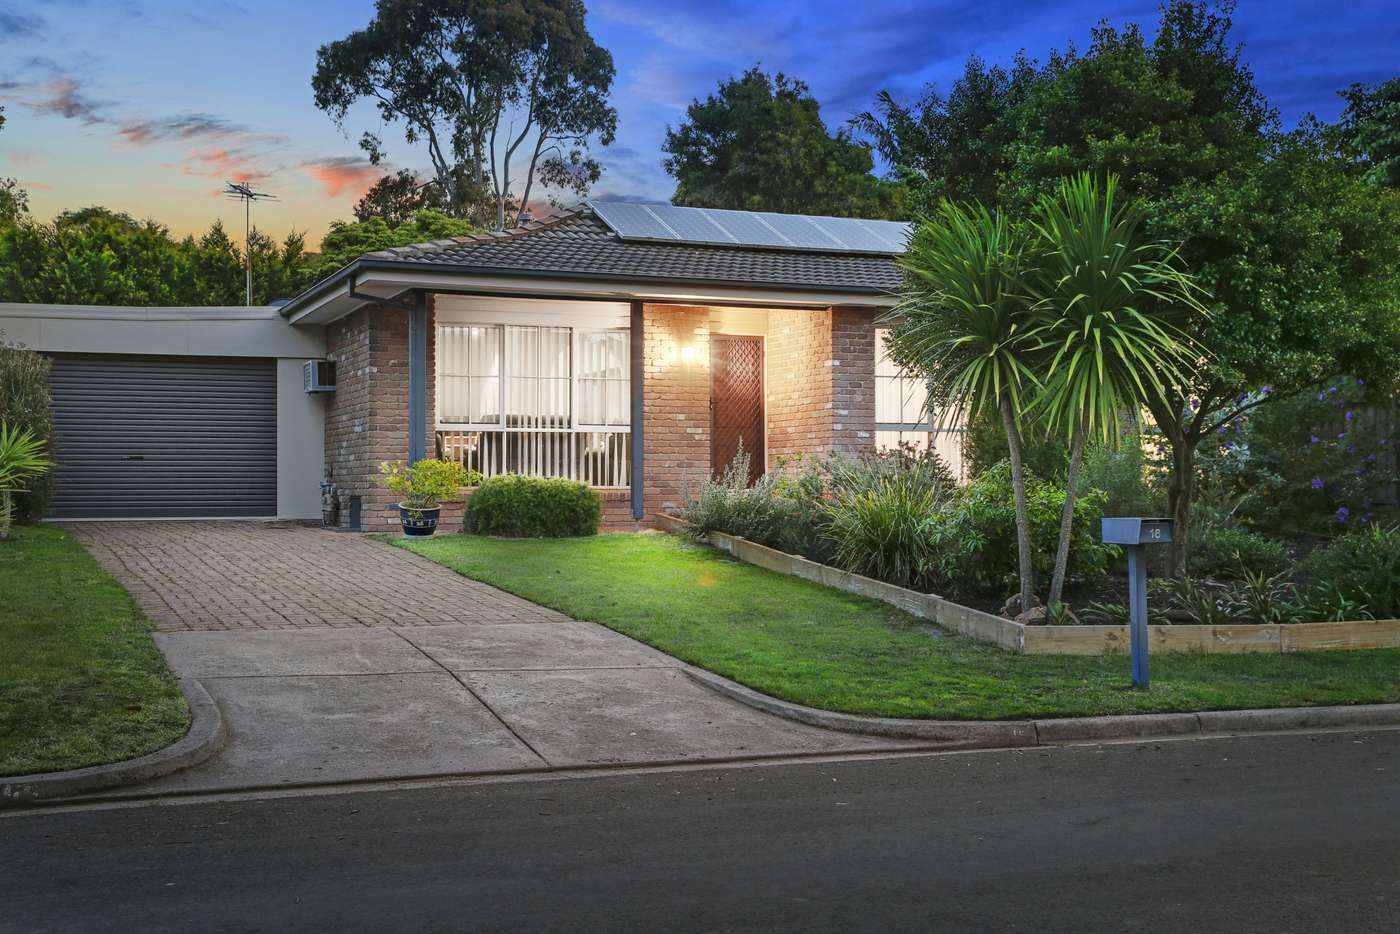 Main view of Homely house listing, 16 Melaleuca Court, Frankston VIC 3199